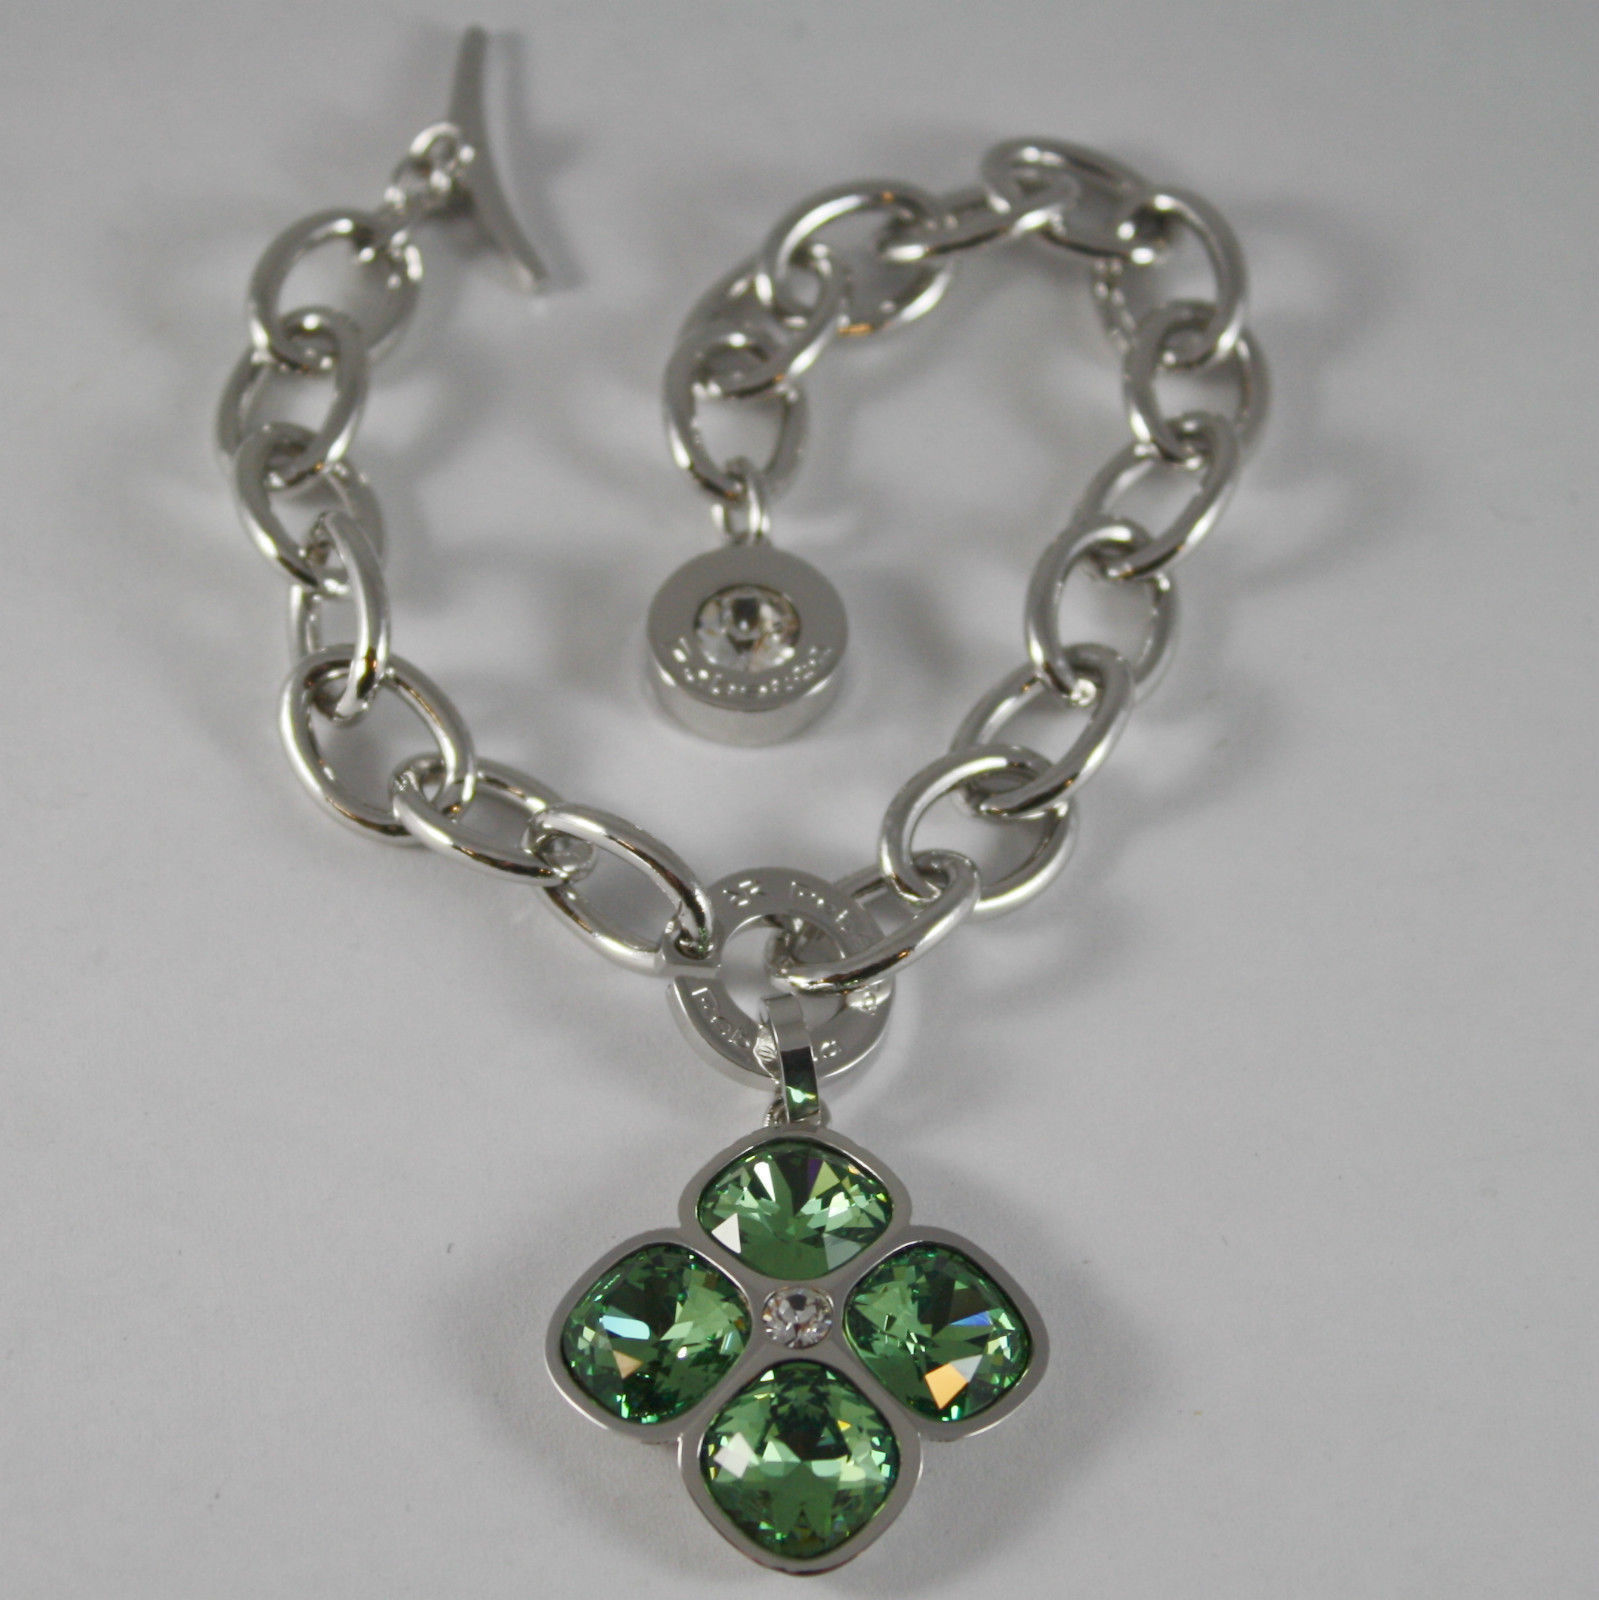 RHODIUM BRONZE REBECCA BRACELET BIG FLOWER, GREEN CRYSTAL CT 16, MADE IN ITALY.